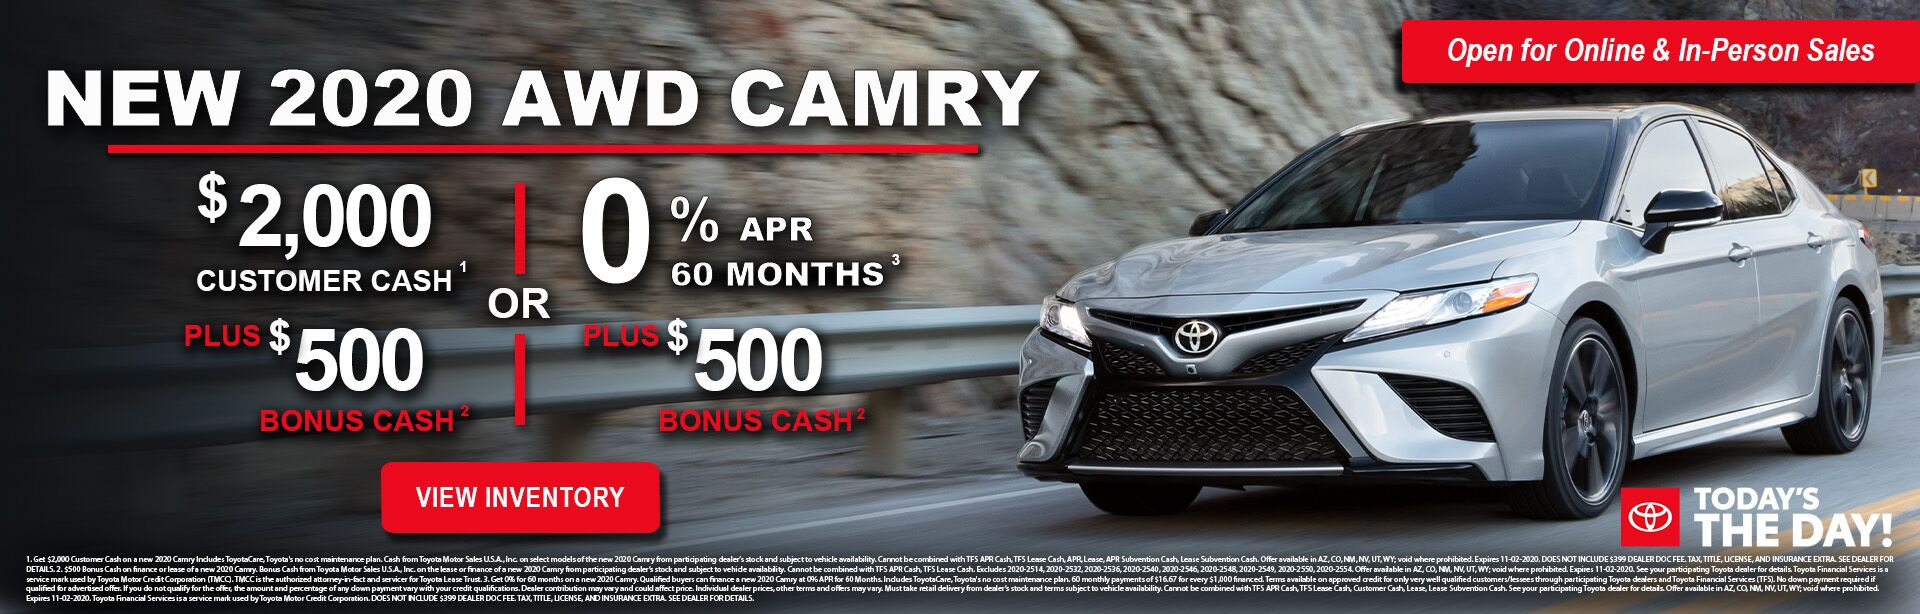 10-2020 Camry Offer